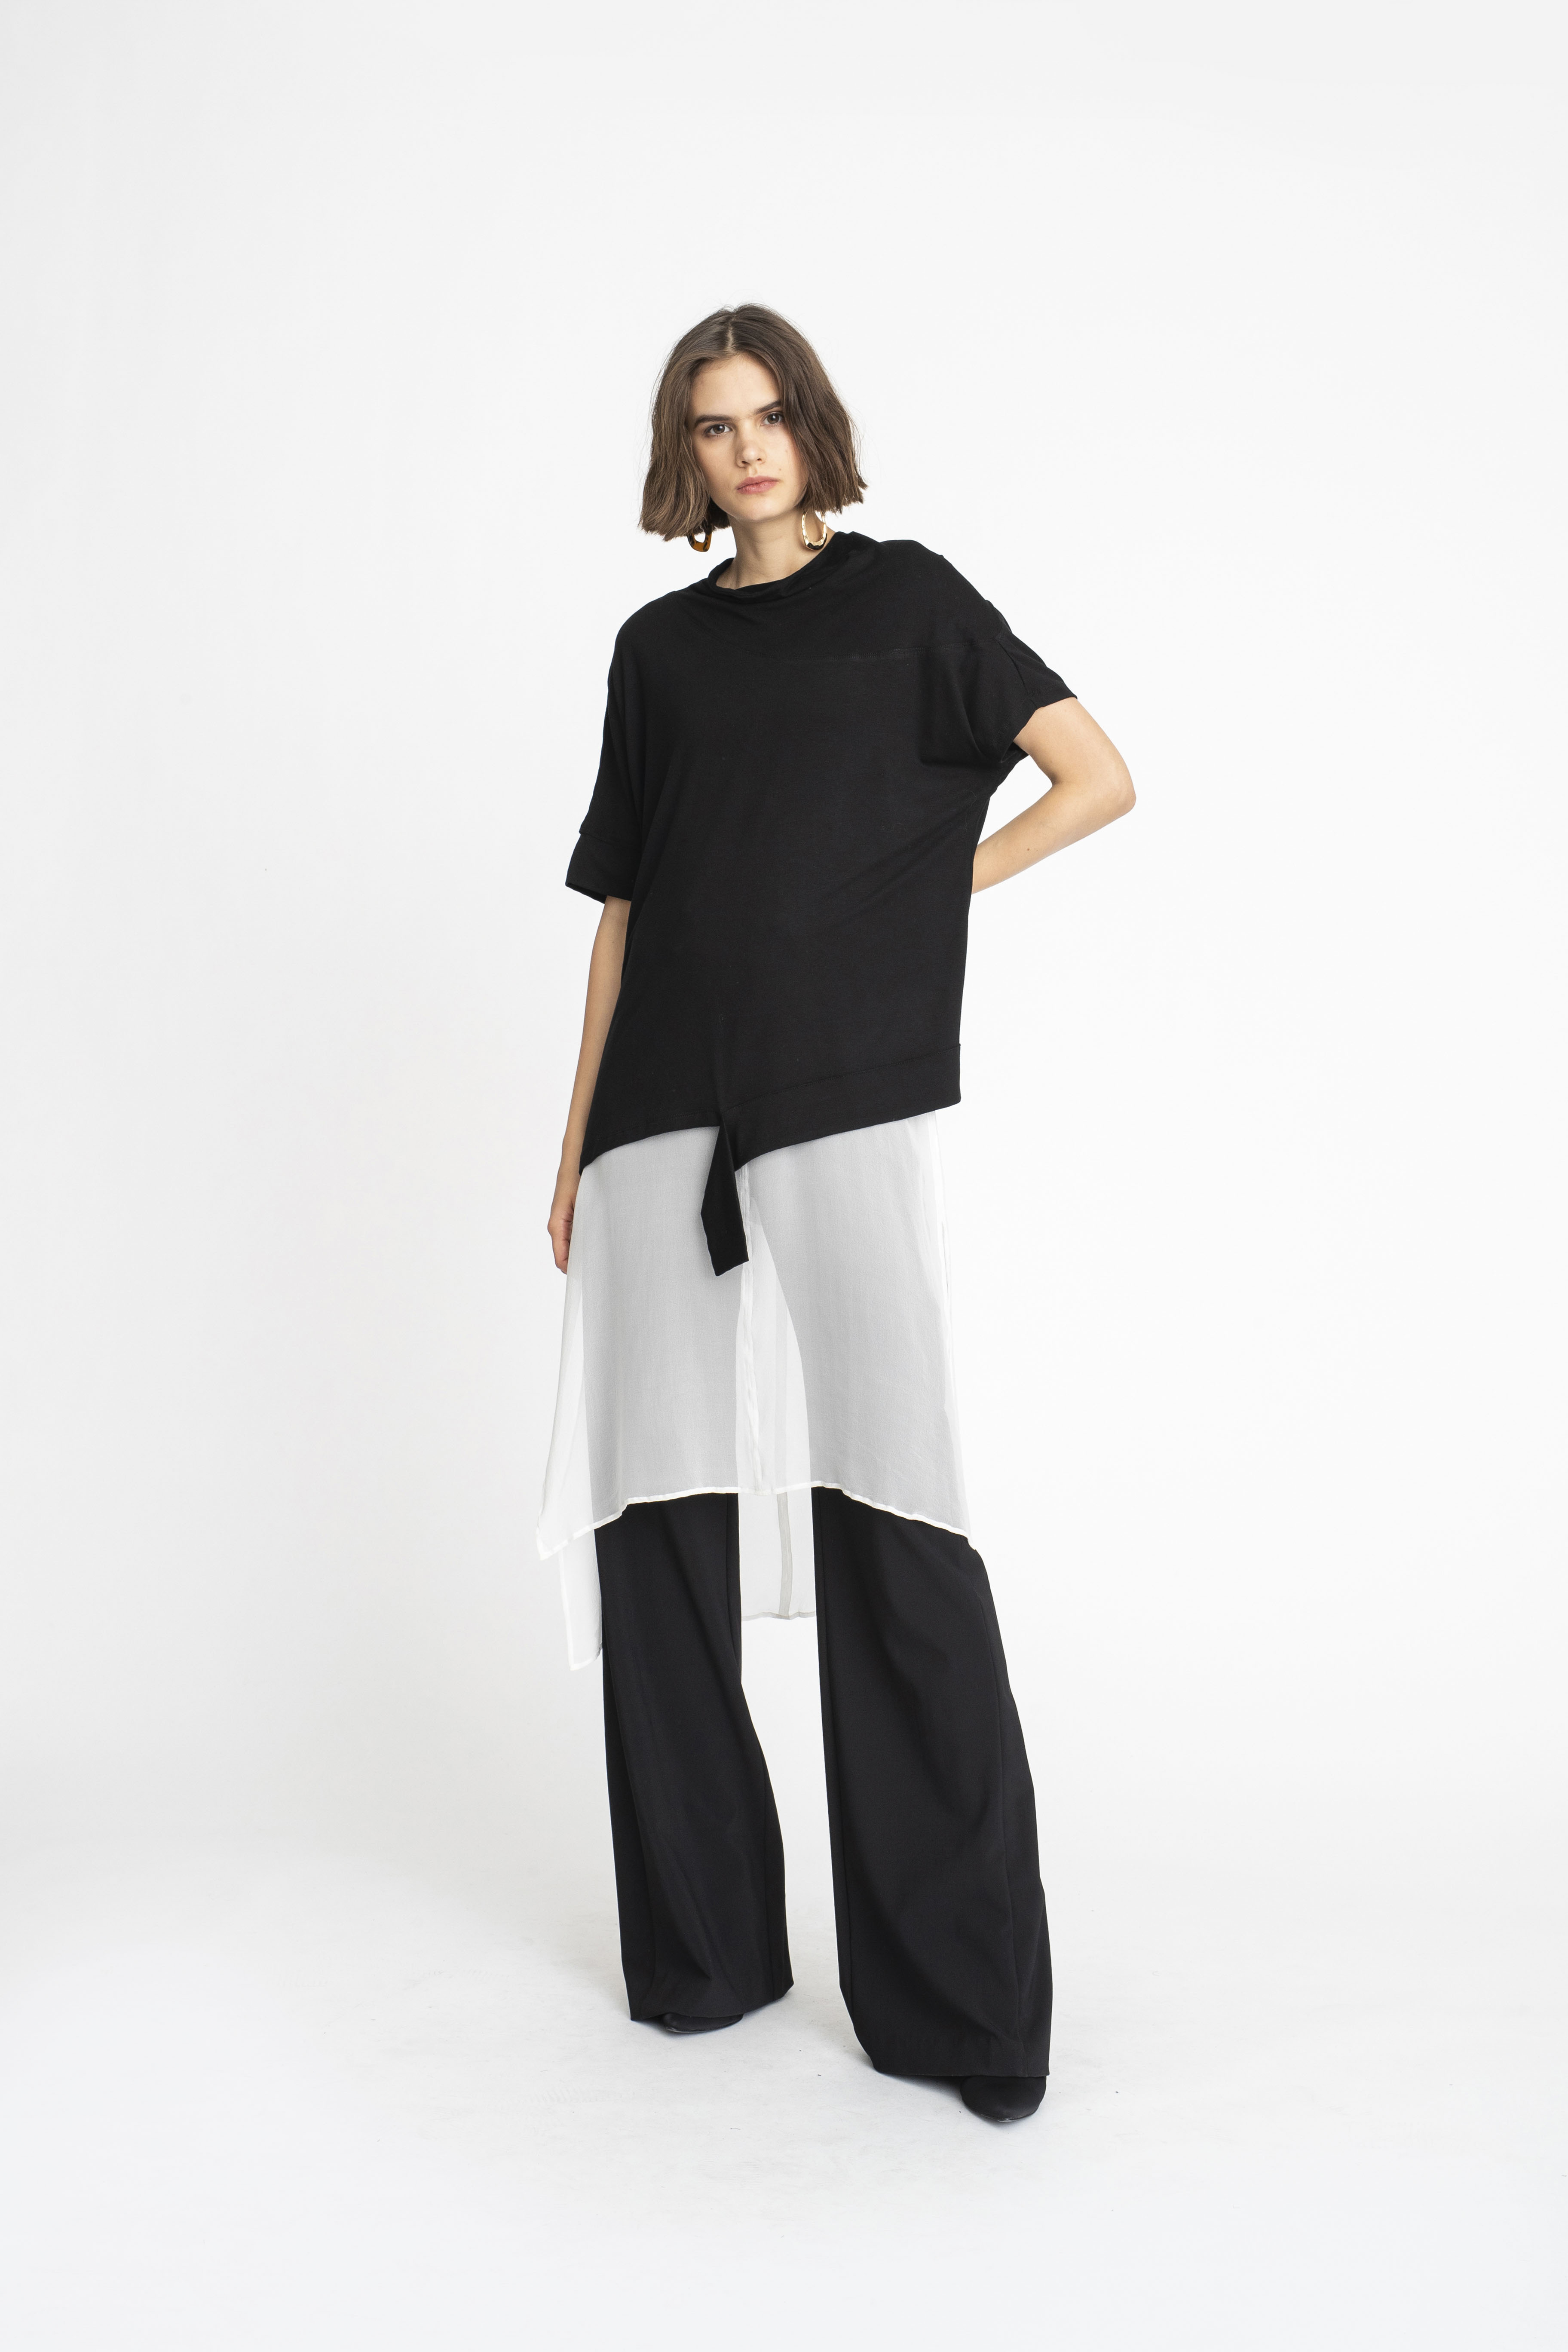 Twist-Tee_Swivel-Tunic_Joust-Pant_TaylorBoutique_AW19_L105_2334 2